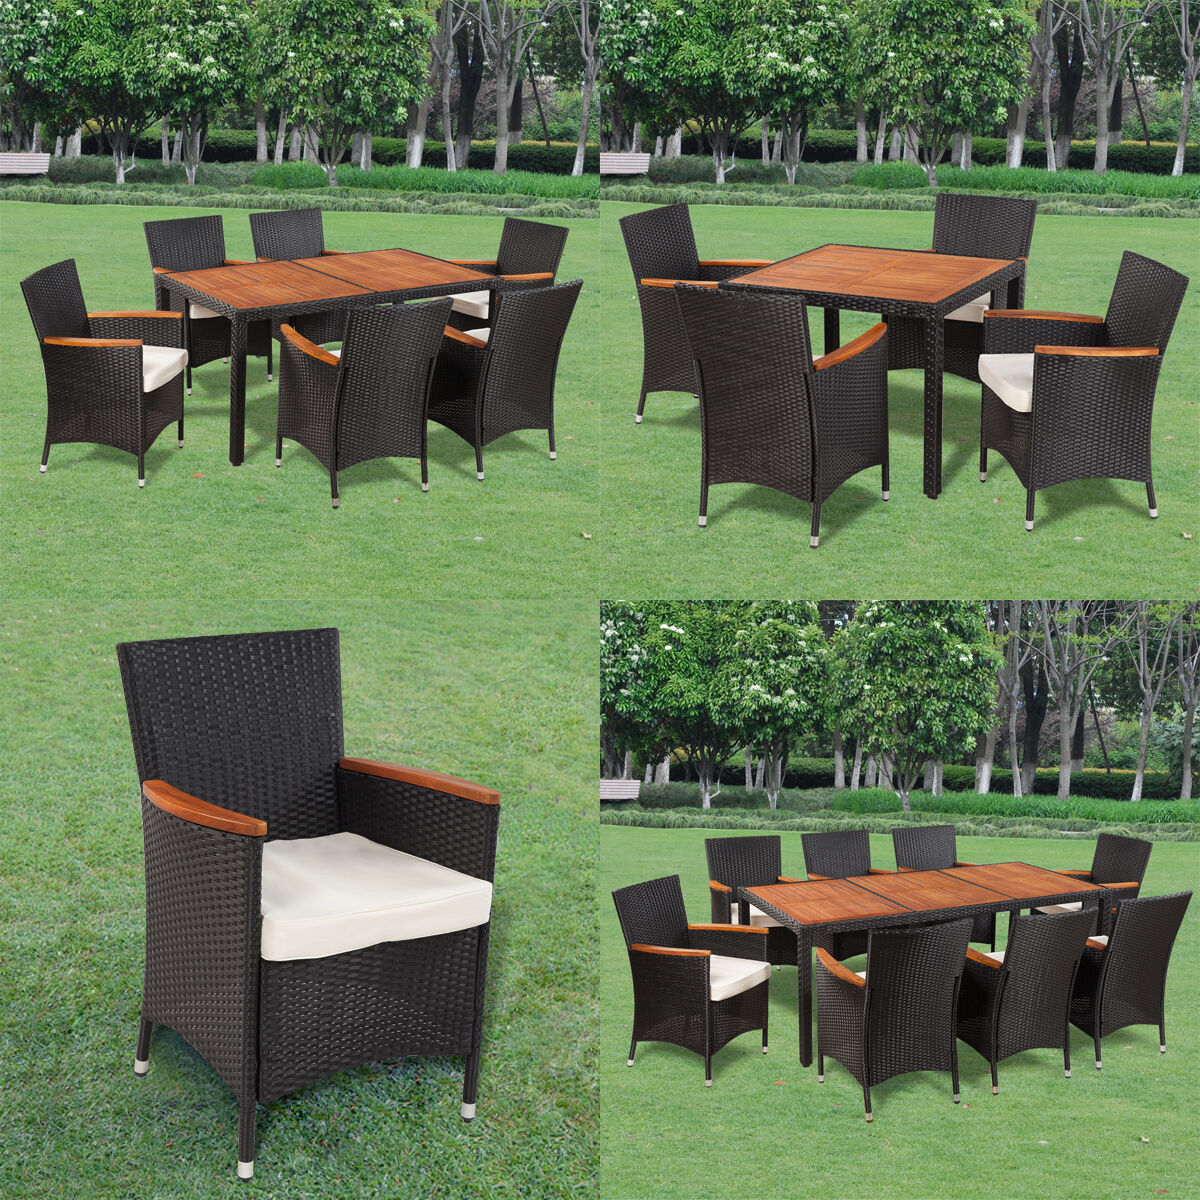 poly rattan gartenm bel gartengarnitur holz sitzgruppe essgruppe tisch st hle eur 236 99. Black Bedroom Furniture Sets. Home Design Ideas